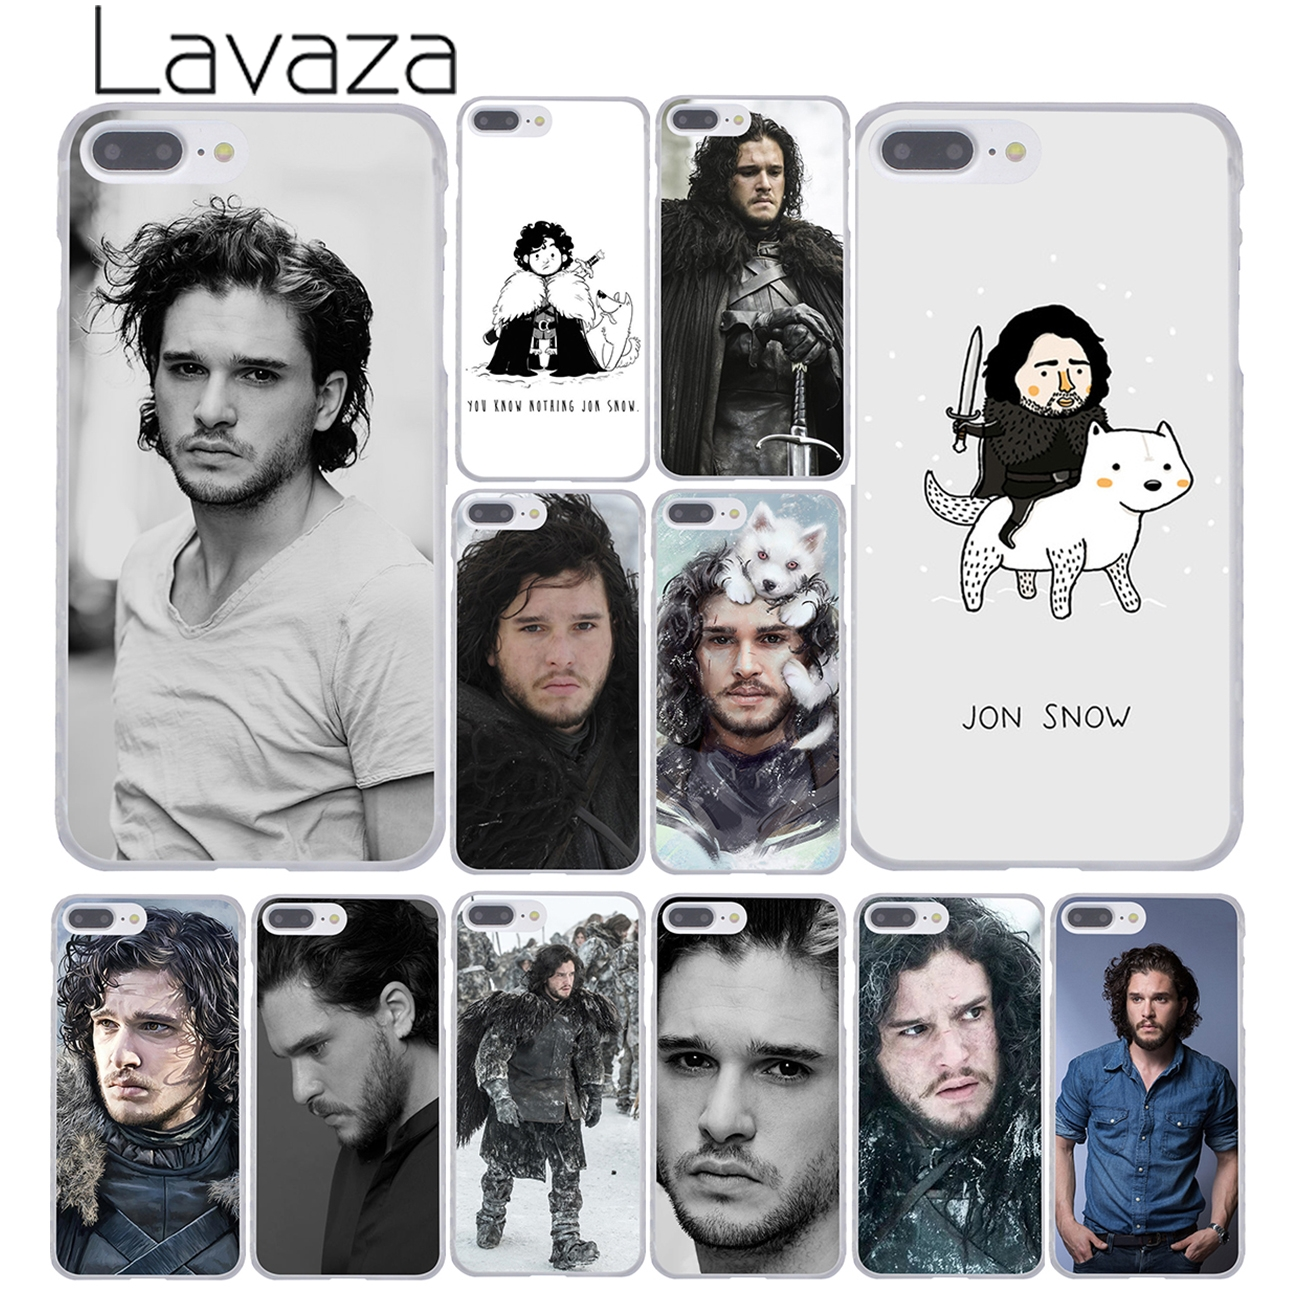 jon snow game of throne hellip Hard Plastic Clear Back Transparent Style Case Cover for iPhone 4 4s 5 5s 5c 6 6s 6 plus s